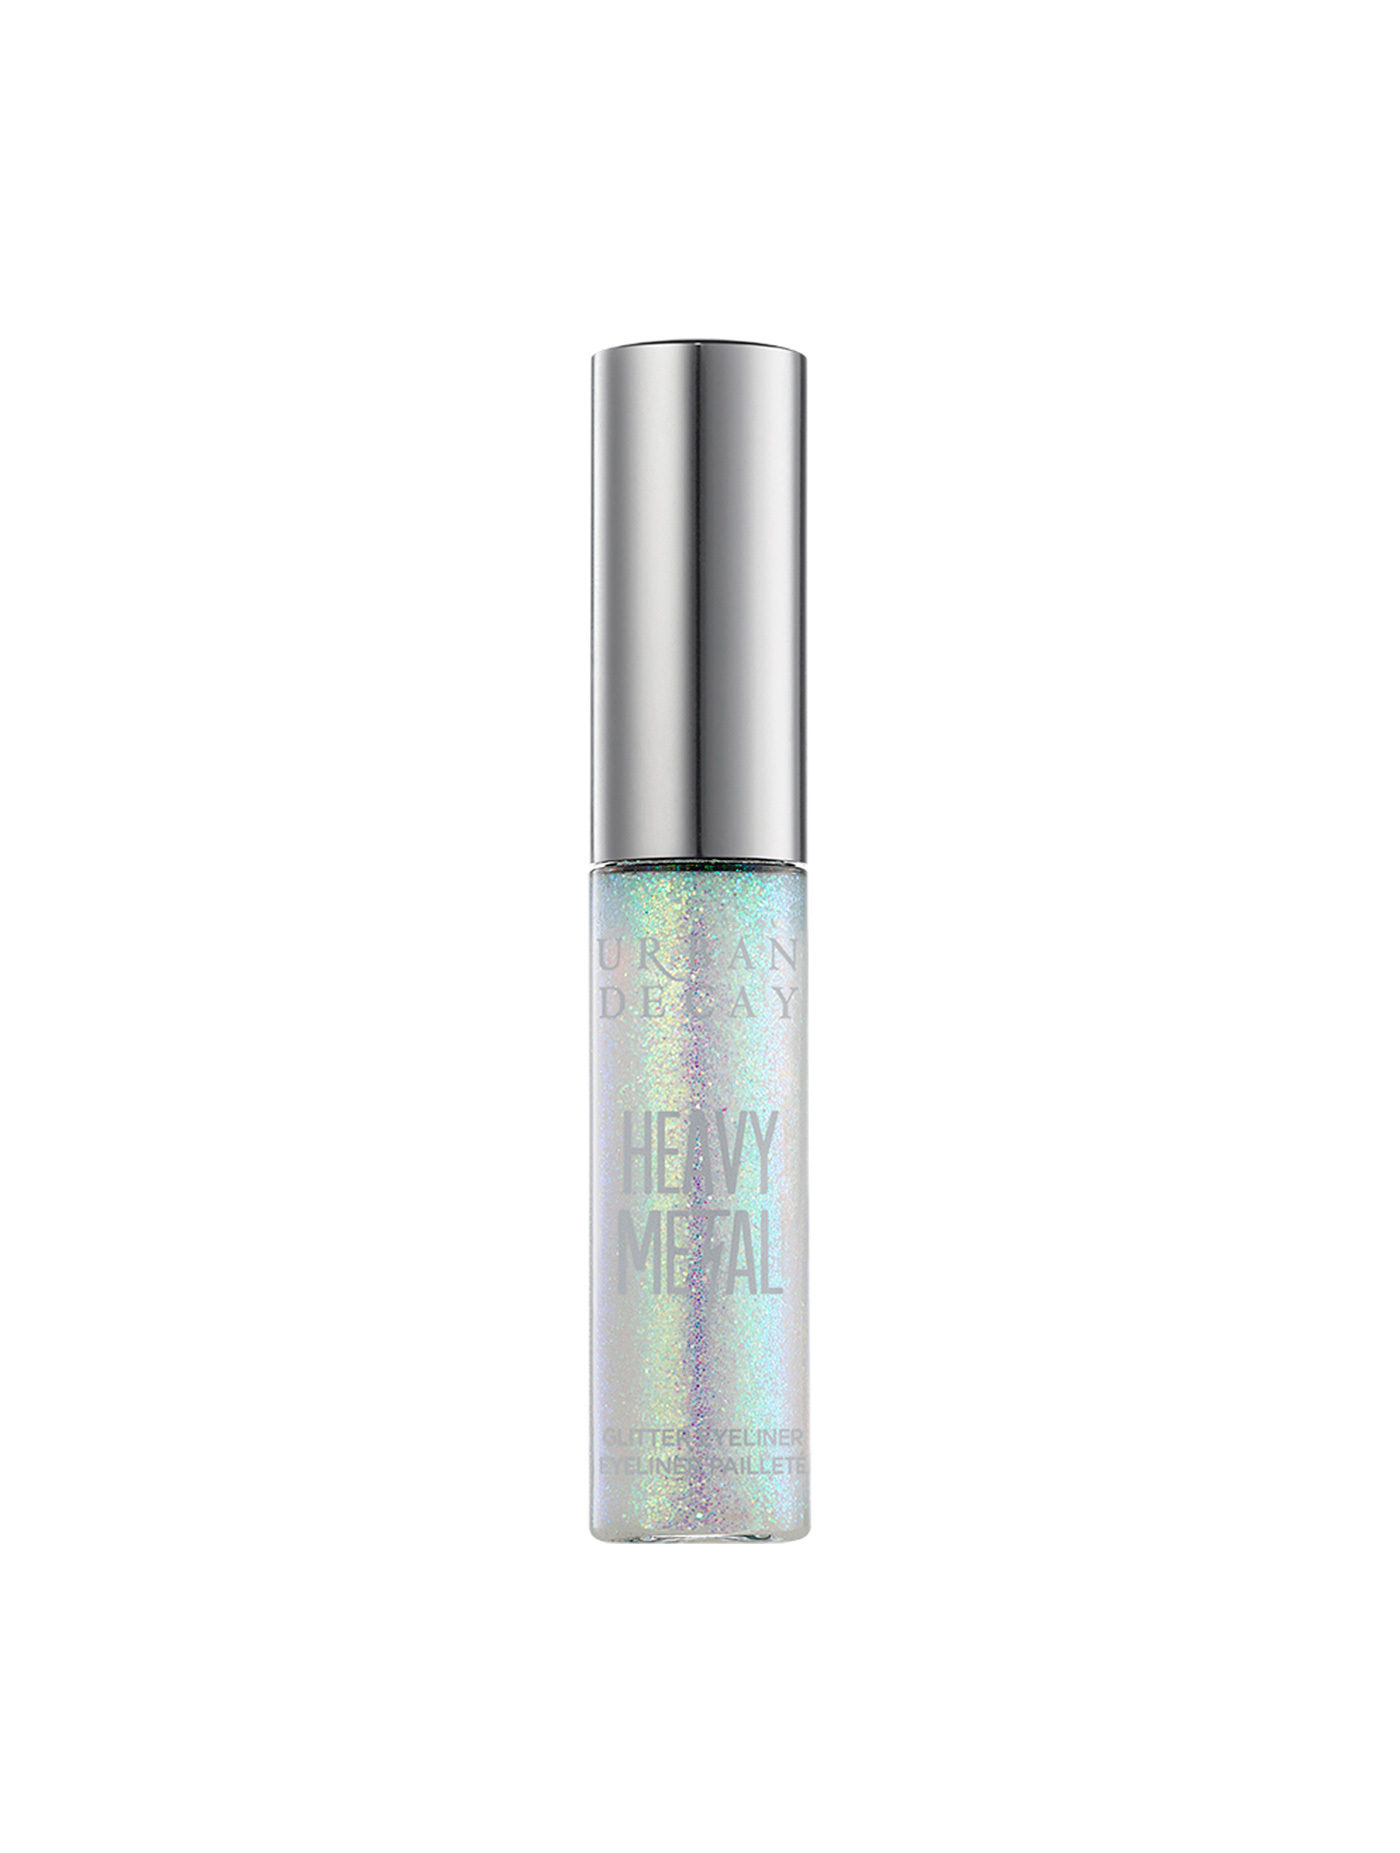 URBAN DECAY HEAVY METAL Glitter Eyeliner #Distortion 7.5ml